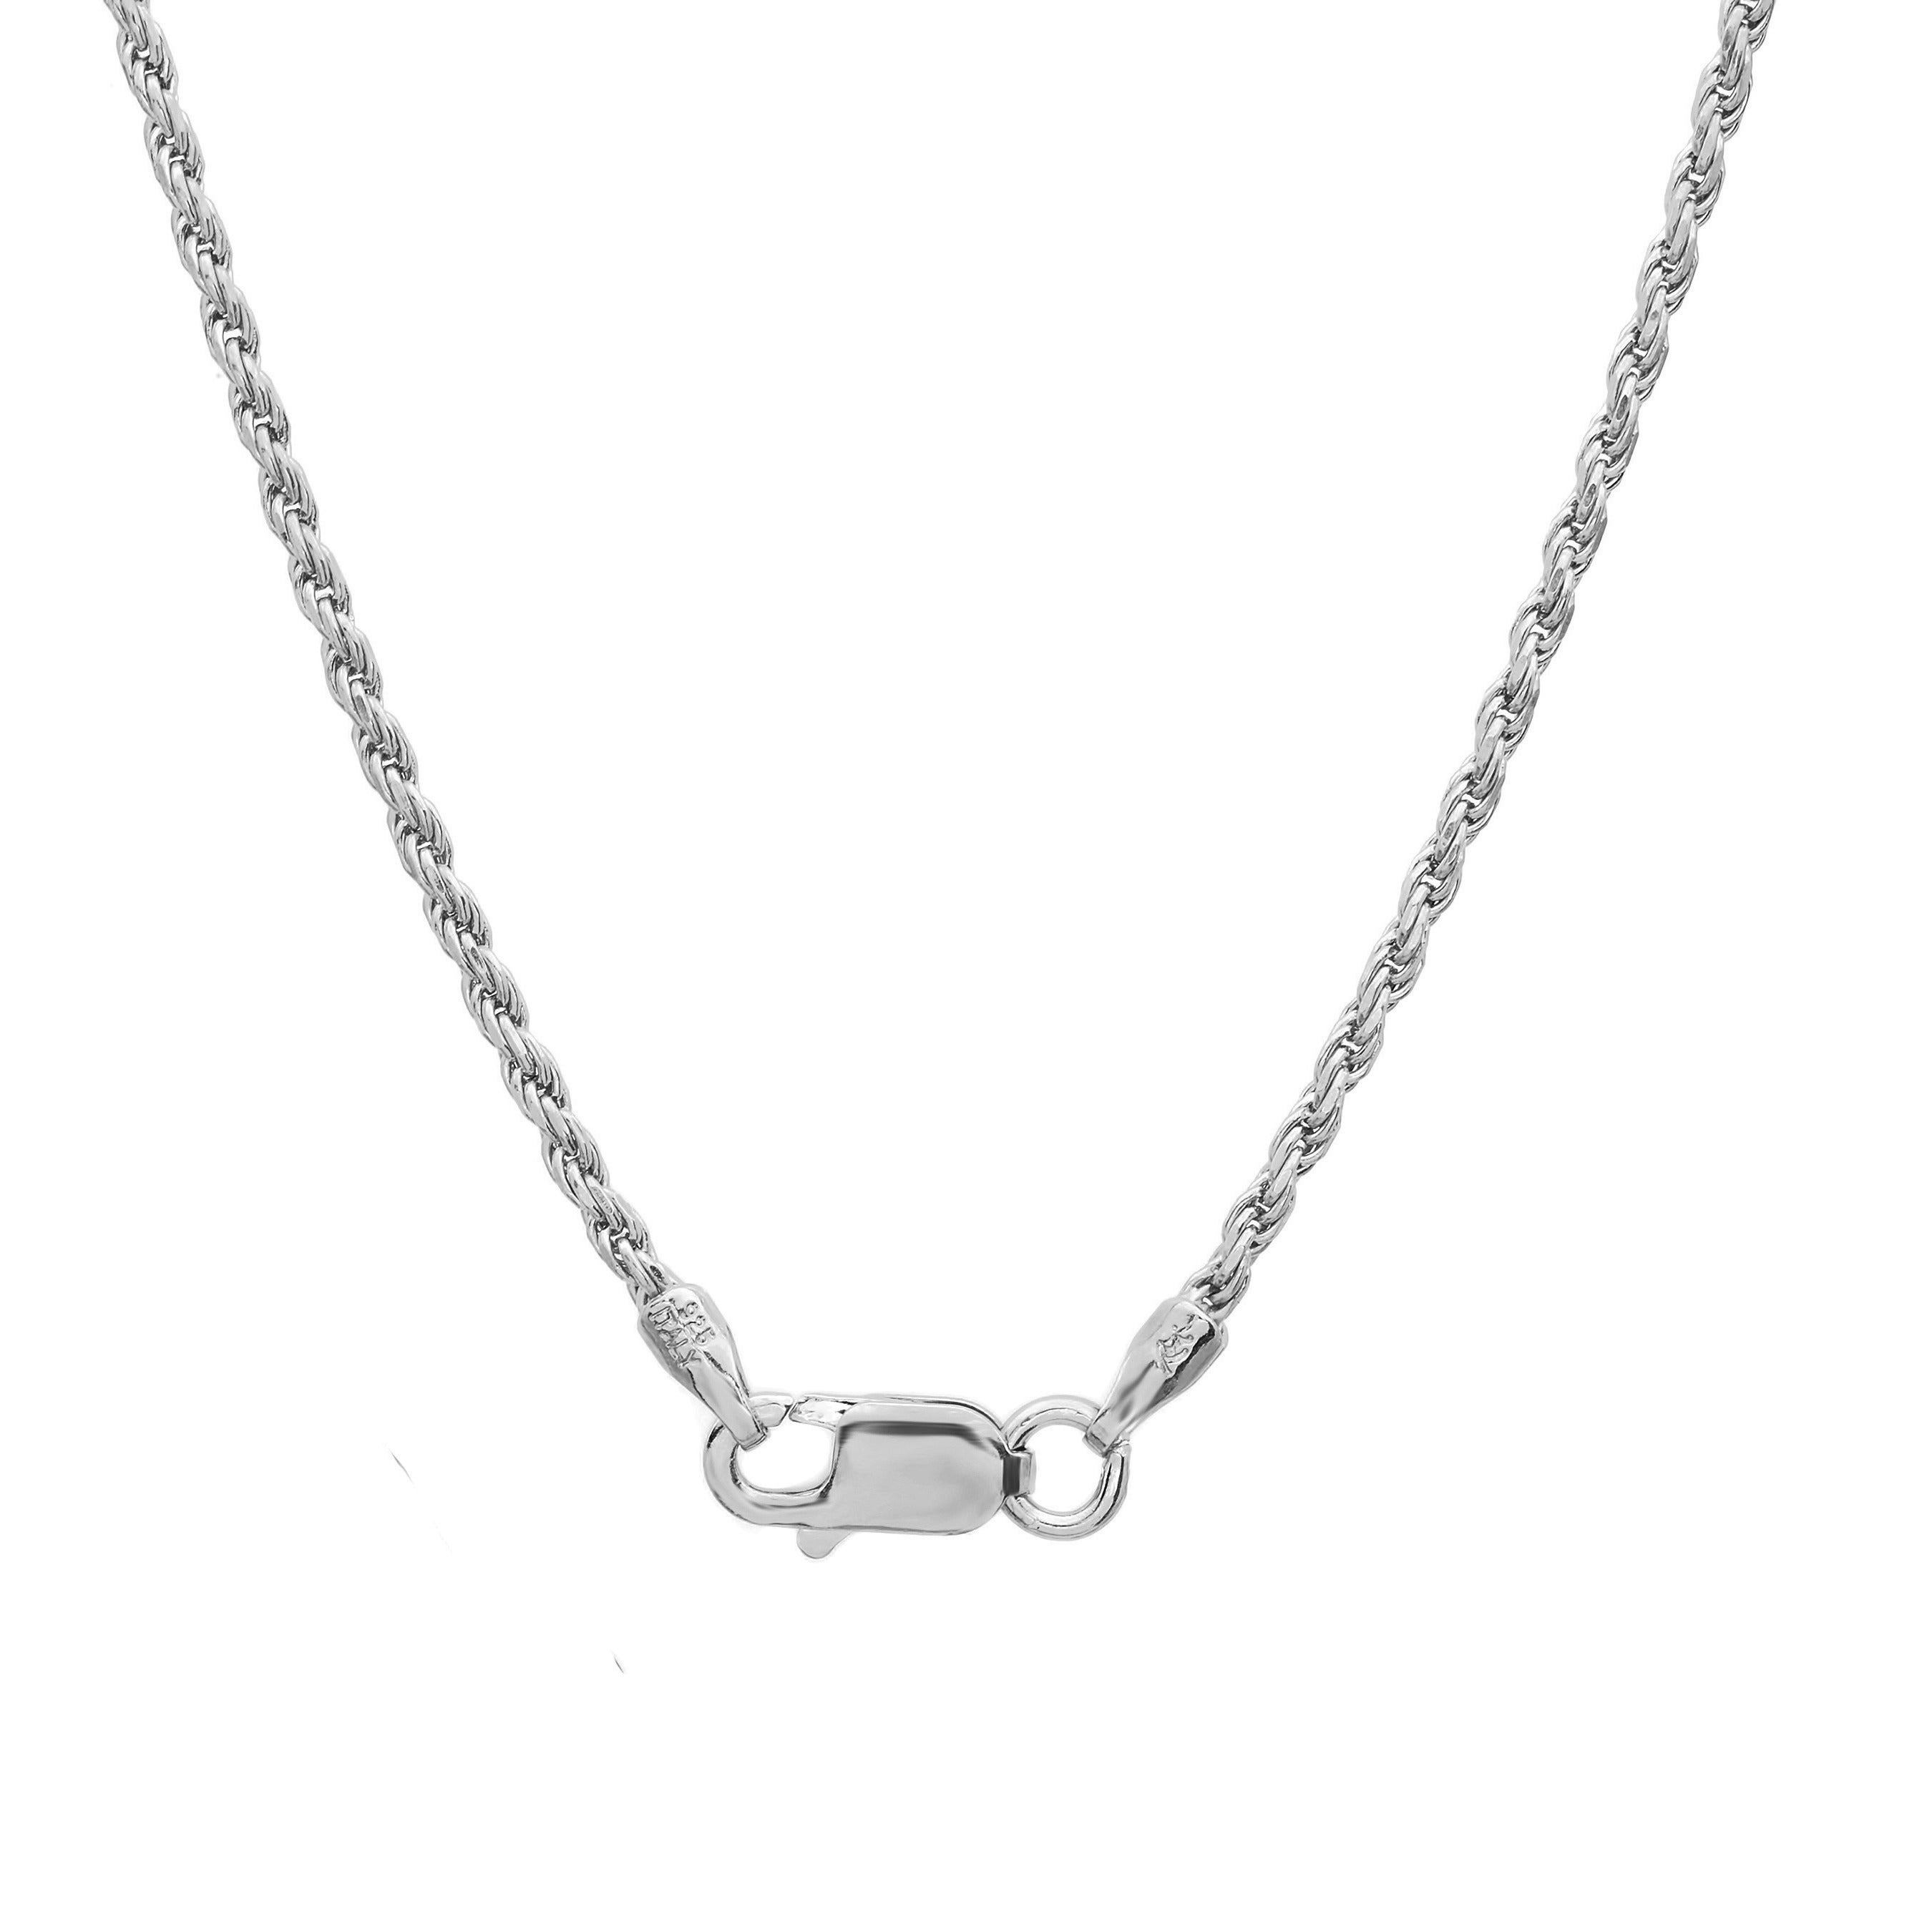 Necklace Sterling Silver Diamond Cut Wheat Chain 2mm 18 20 24 30 Inches